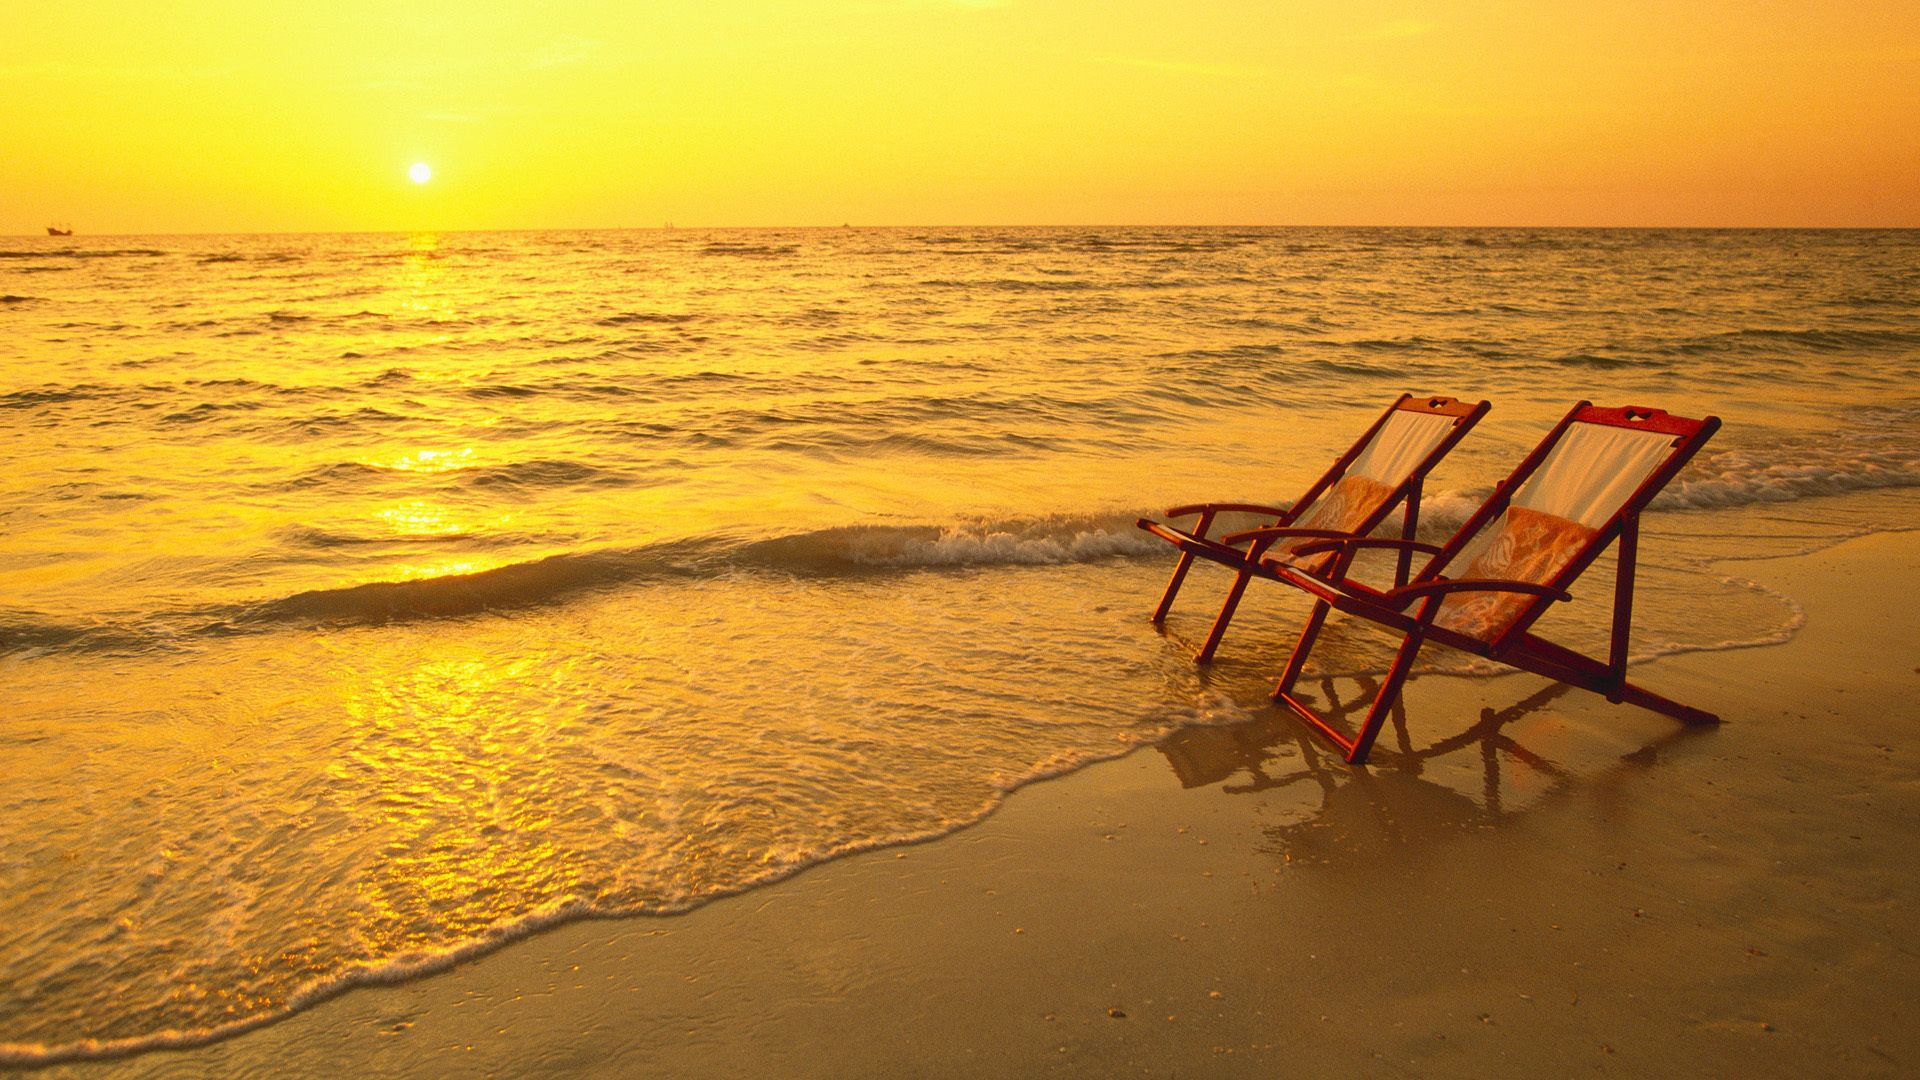 Beach with chairs - Beach Chairs At Sunset More Details At Usefultraveltips Net Beautiful Nature Pinterest On The Beach Beach Sunsets And Sun